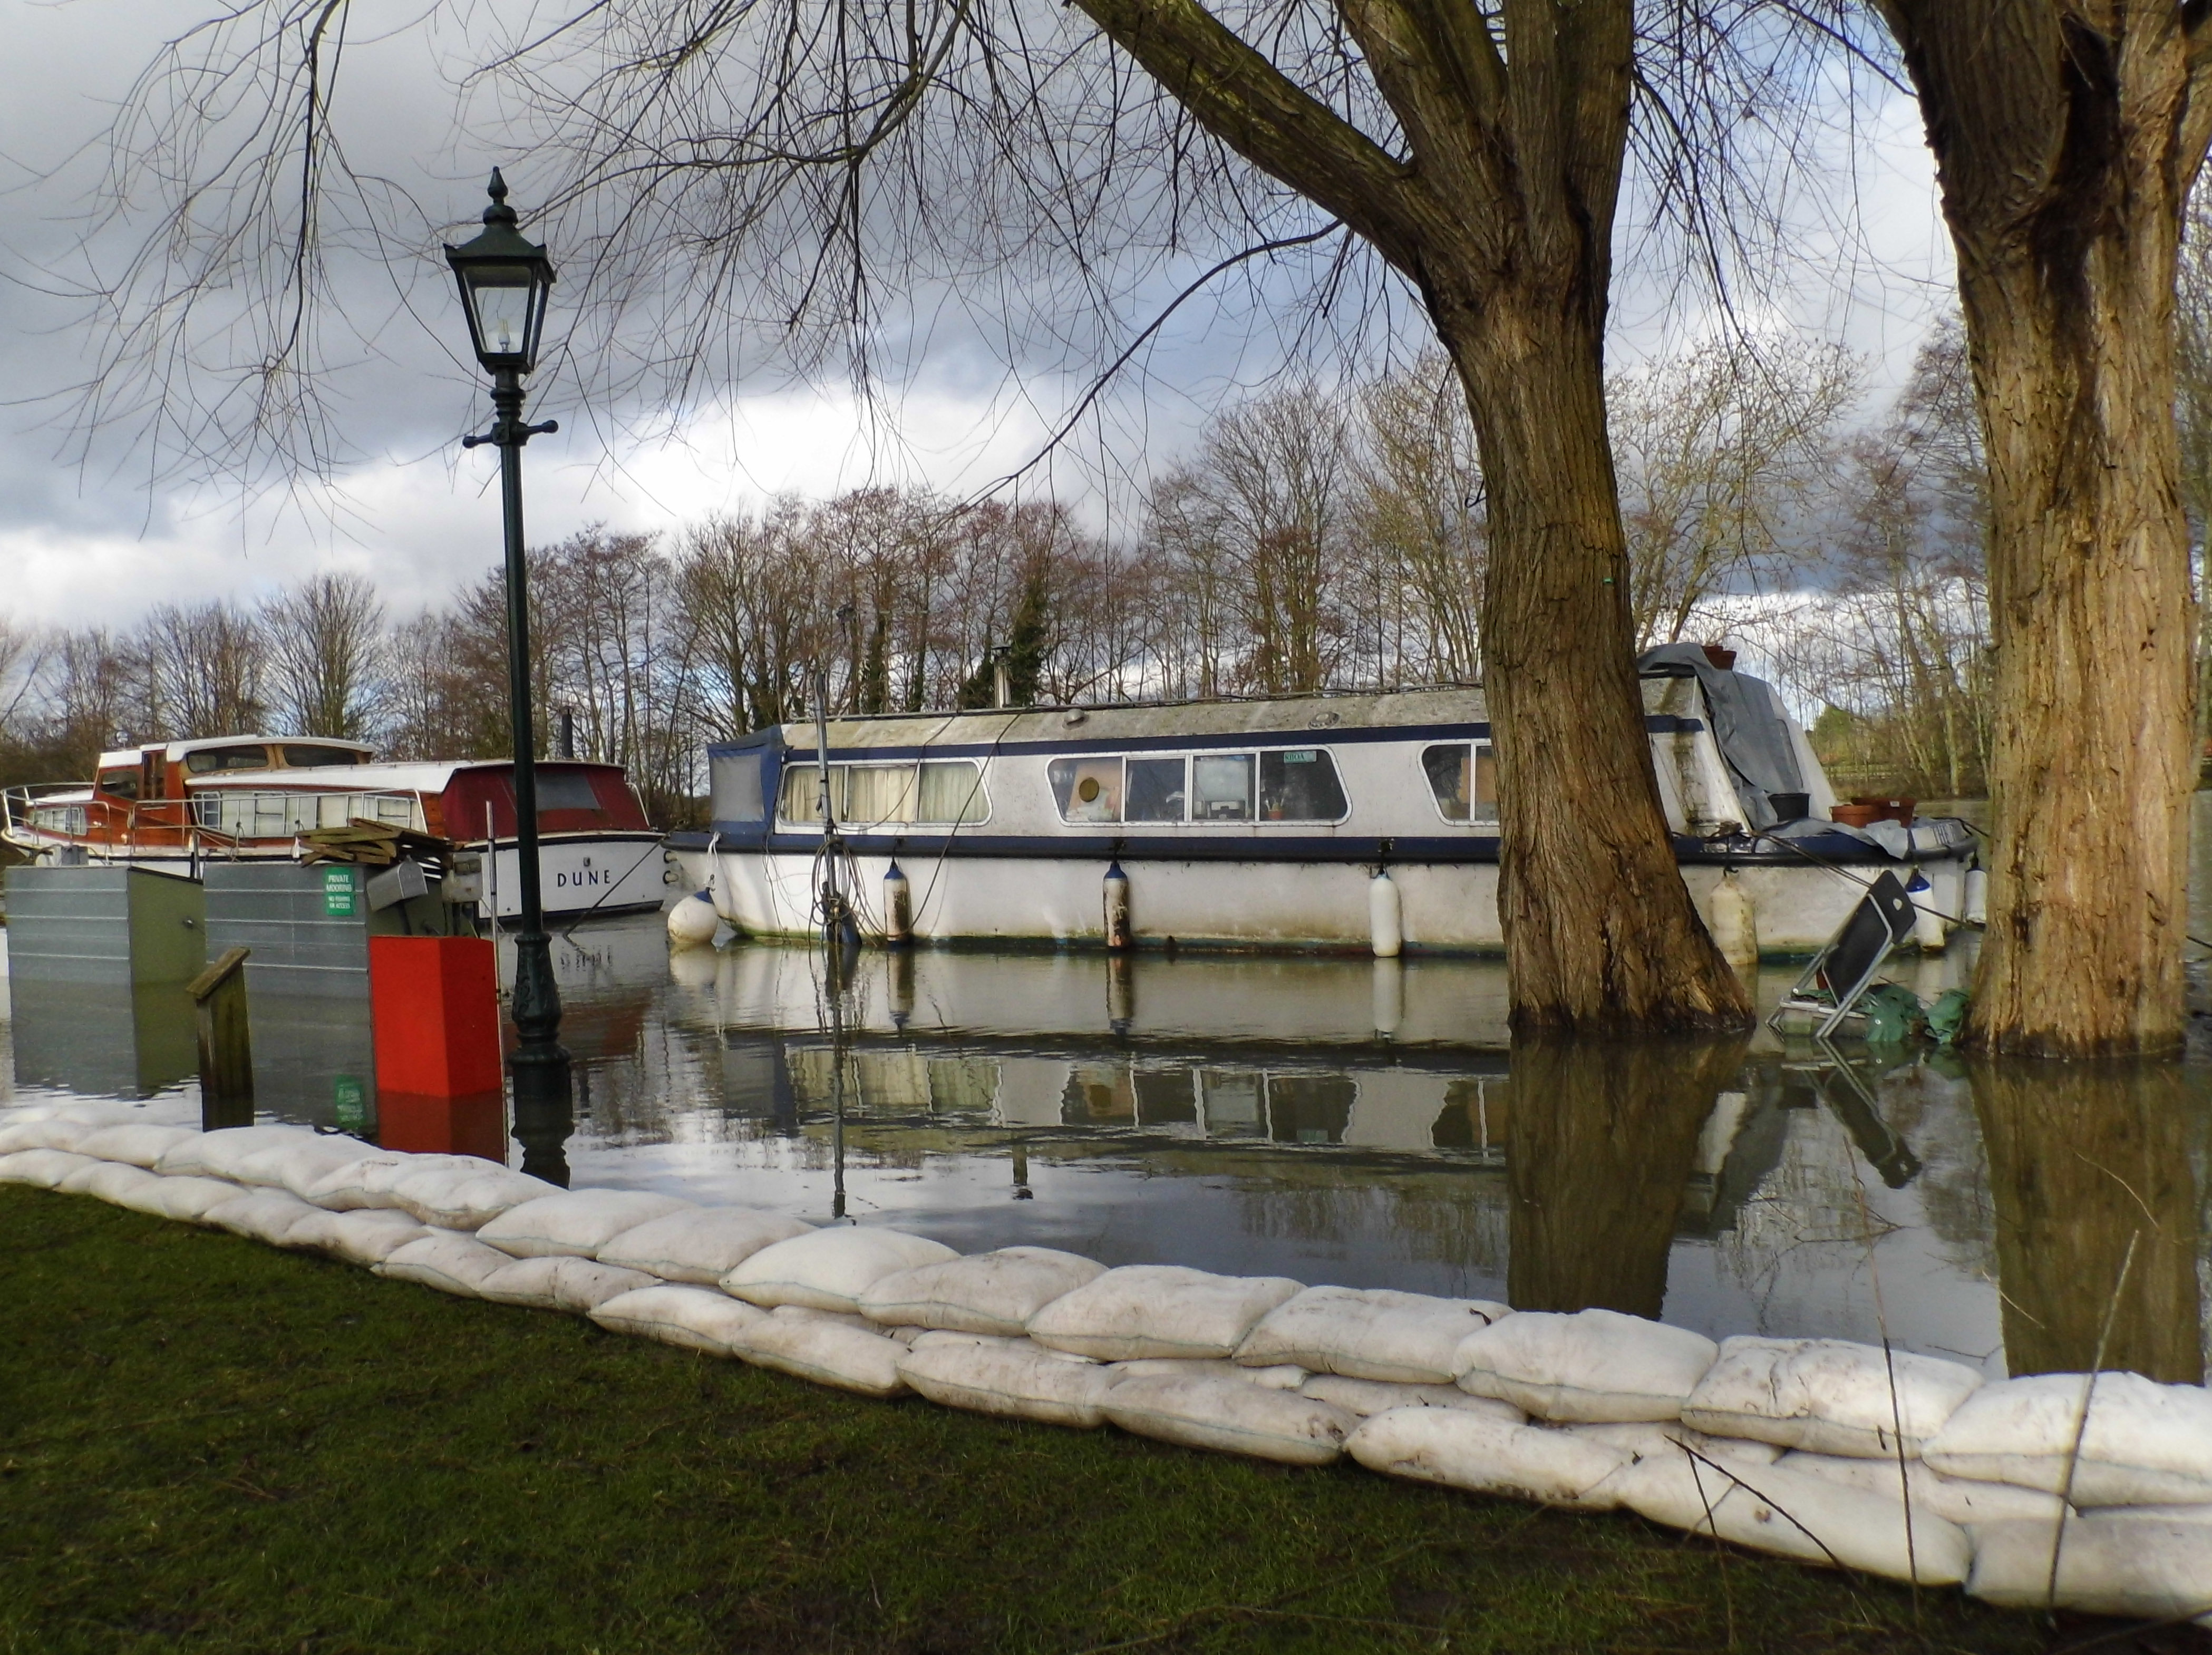 Floodsax-save-caravan-park-in-Windsor